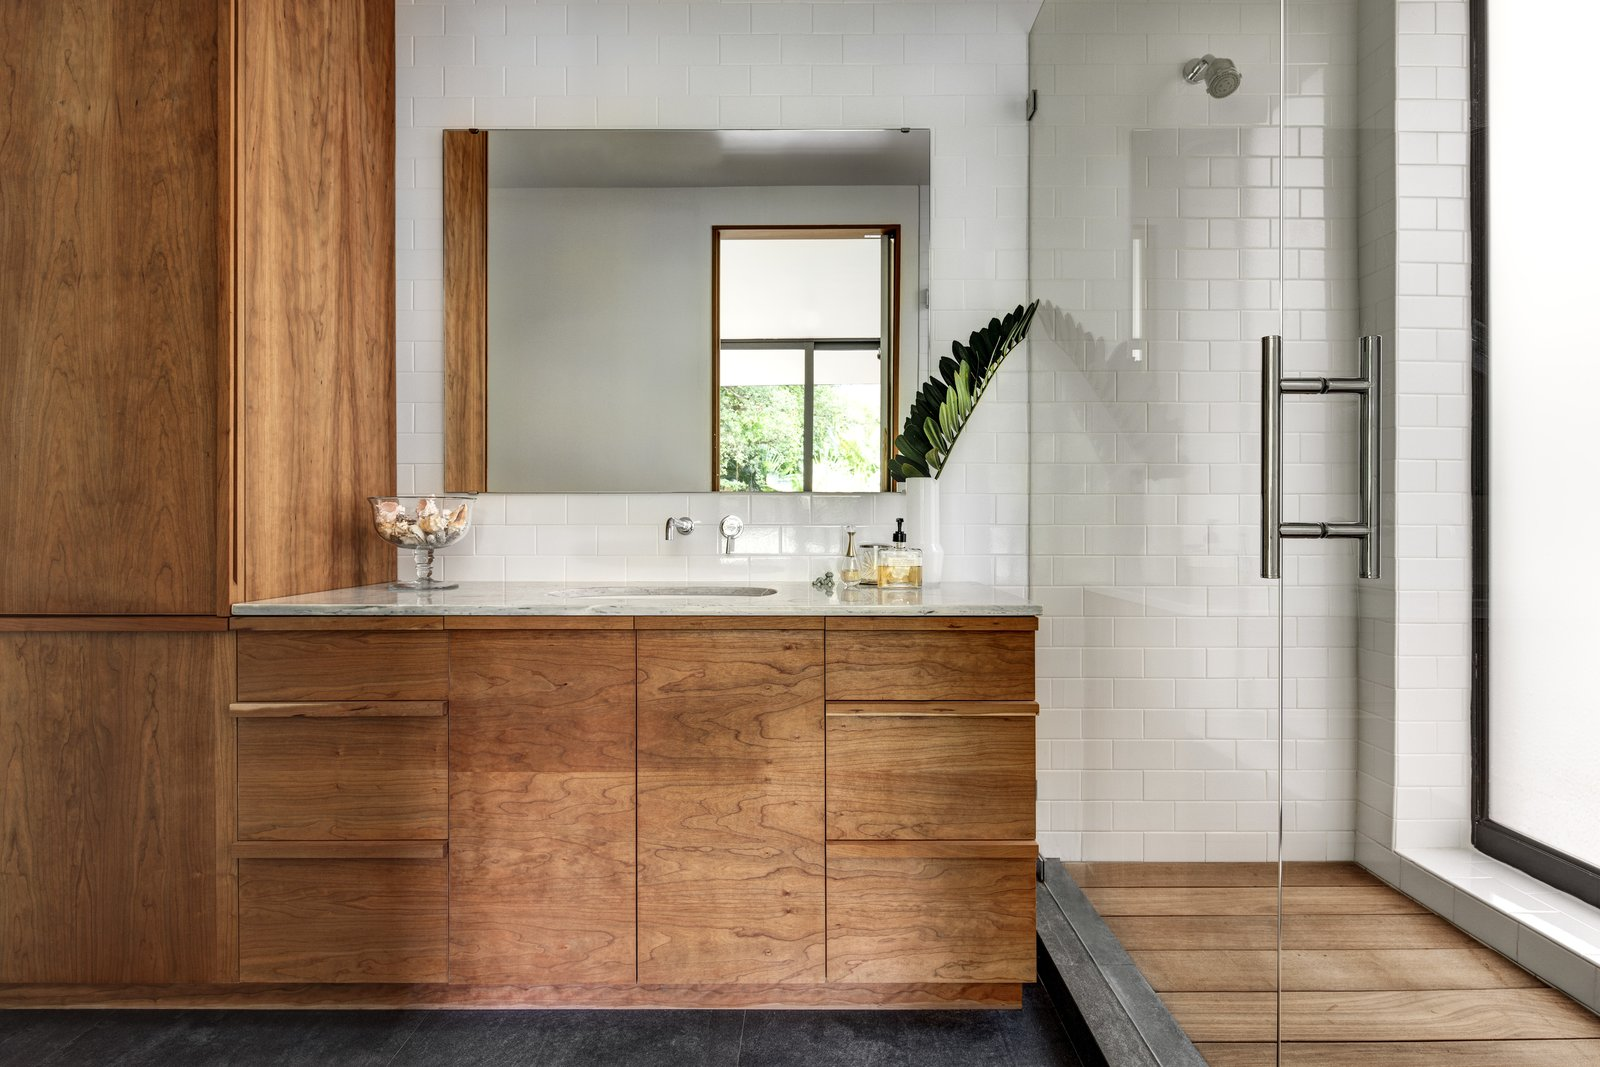 The master bathroom extends the same visual themes found throughout the rest of the home to keep the overall scheme unified. Ipe wood was used for the shower flooring and lightly oiled cherry wood forms the cabinets.  Brillhart House by Emma Janzen